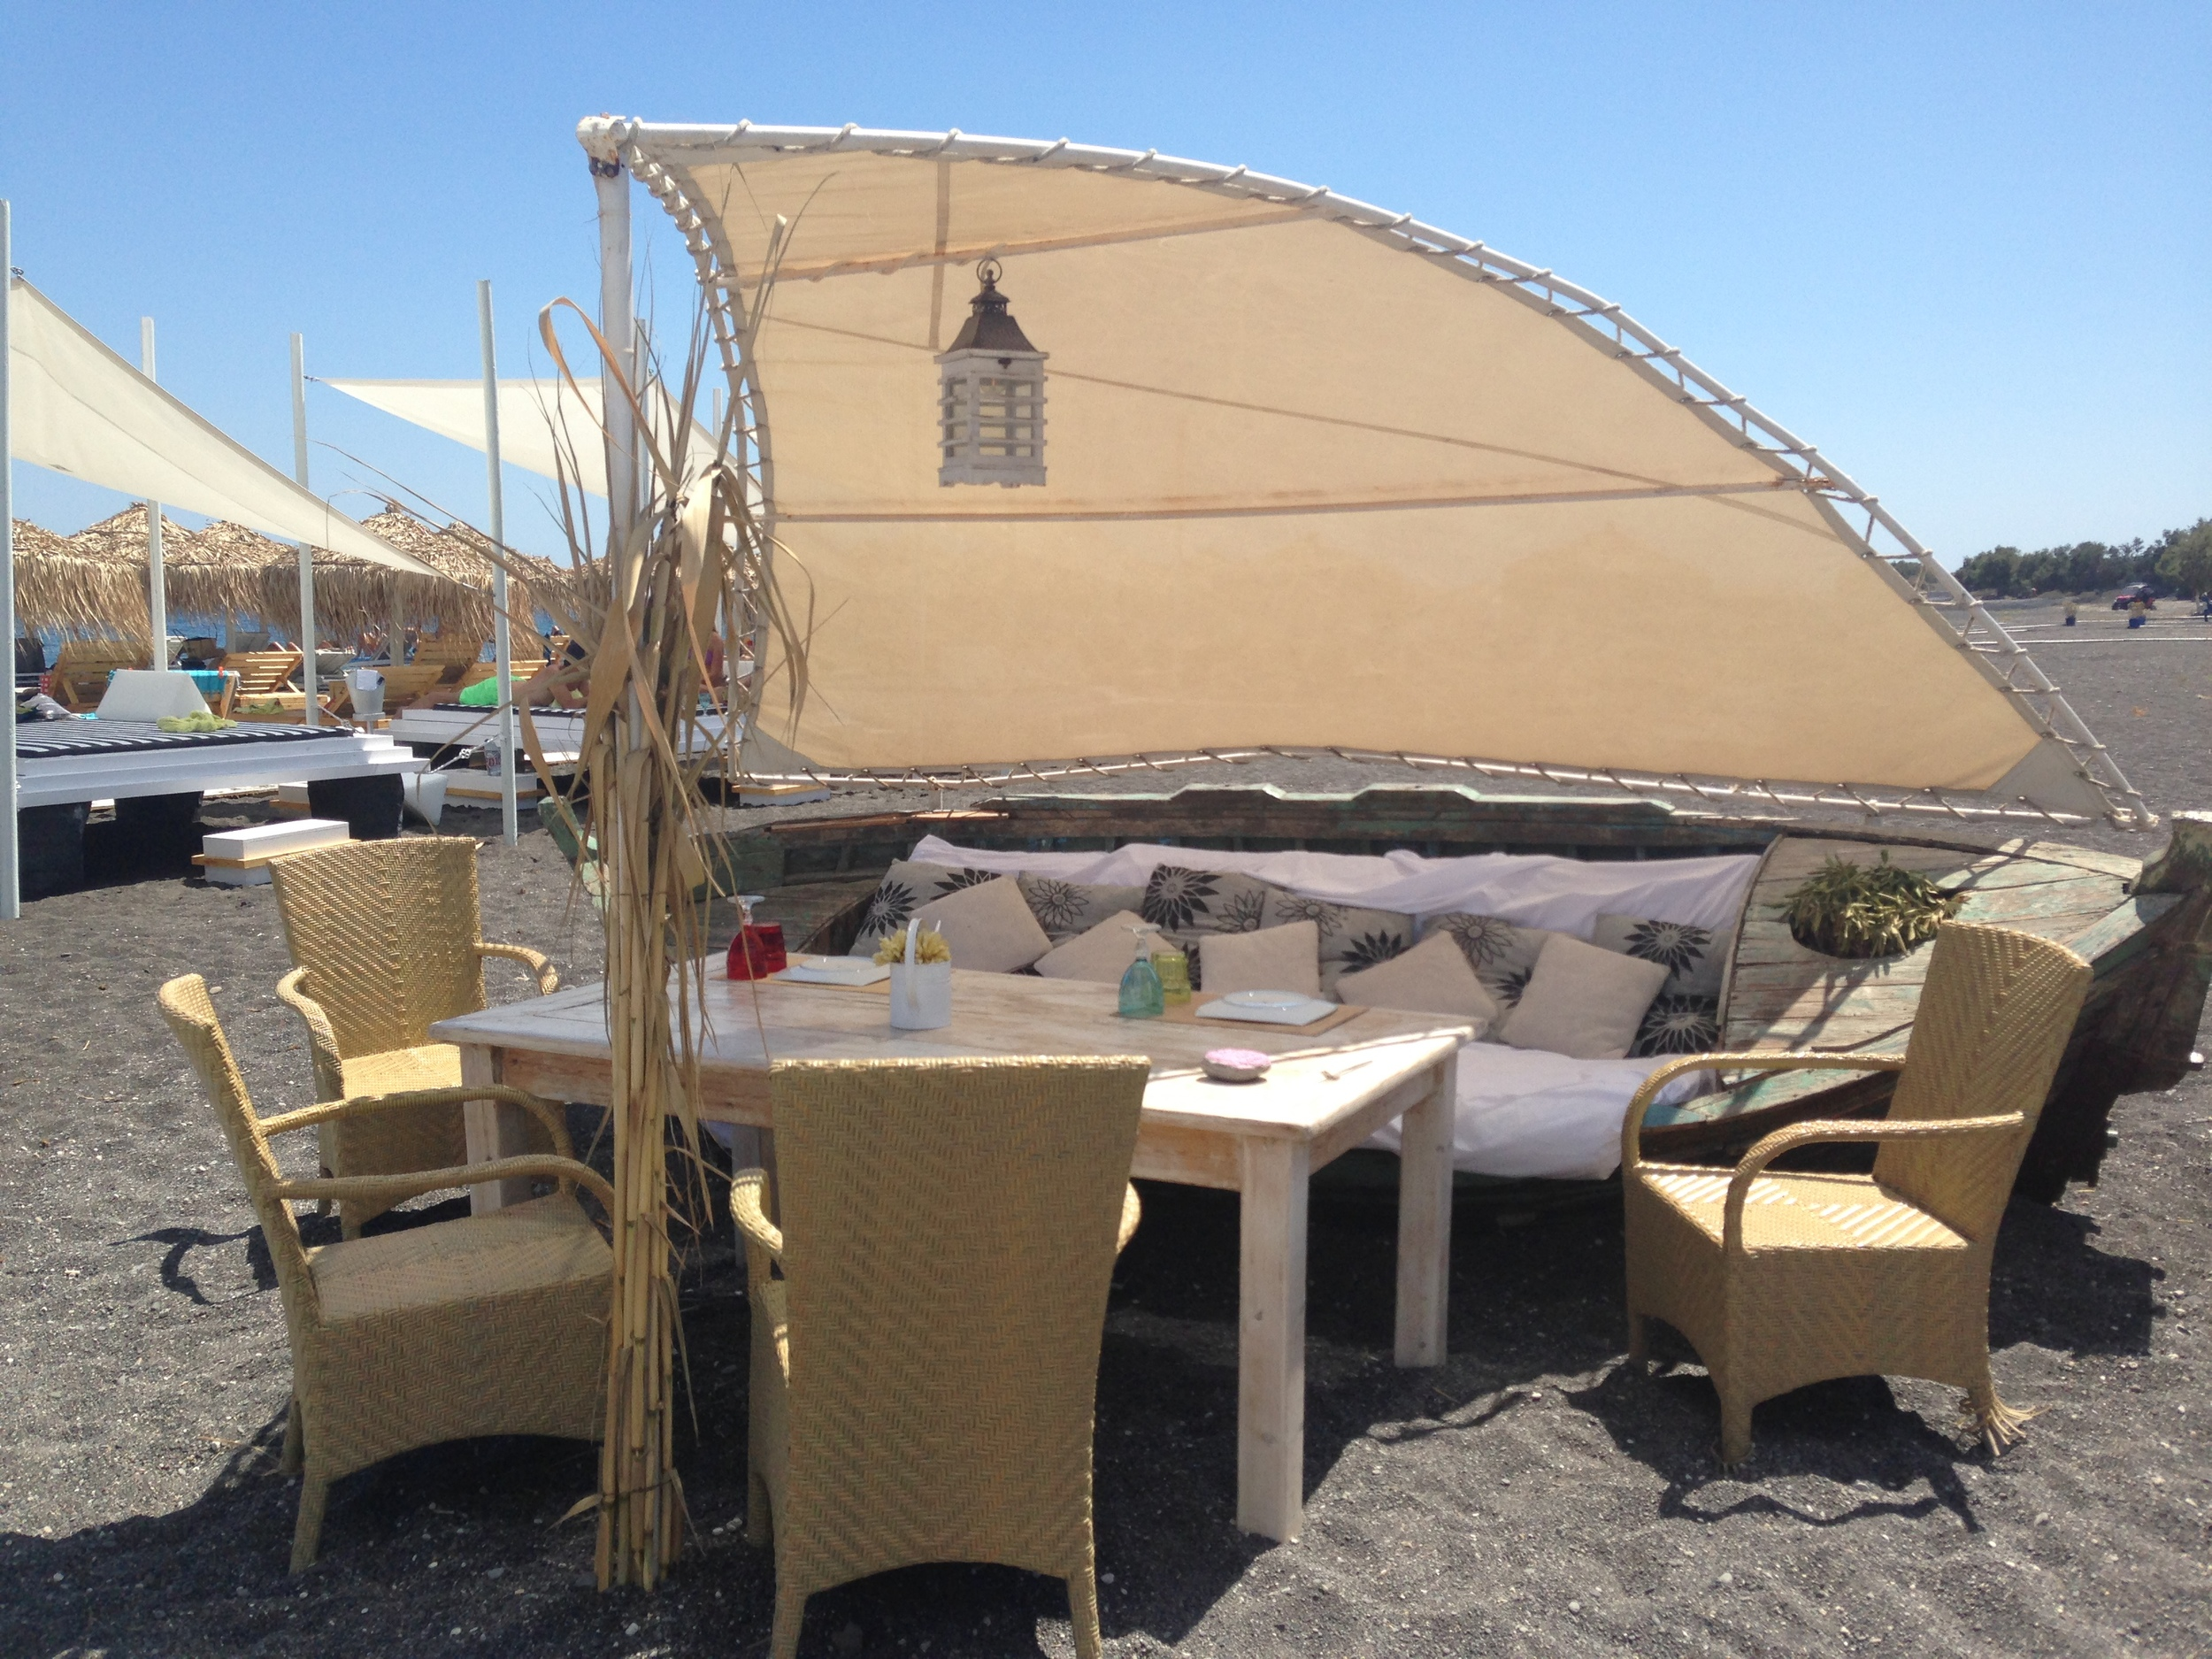 Enjoy the Seaside Notos by experience beachside or inside their restaurant.